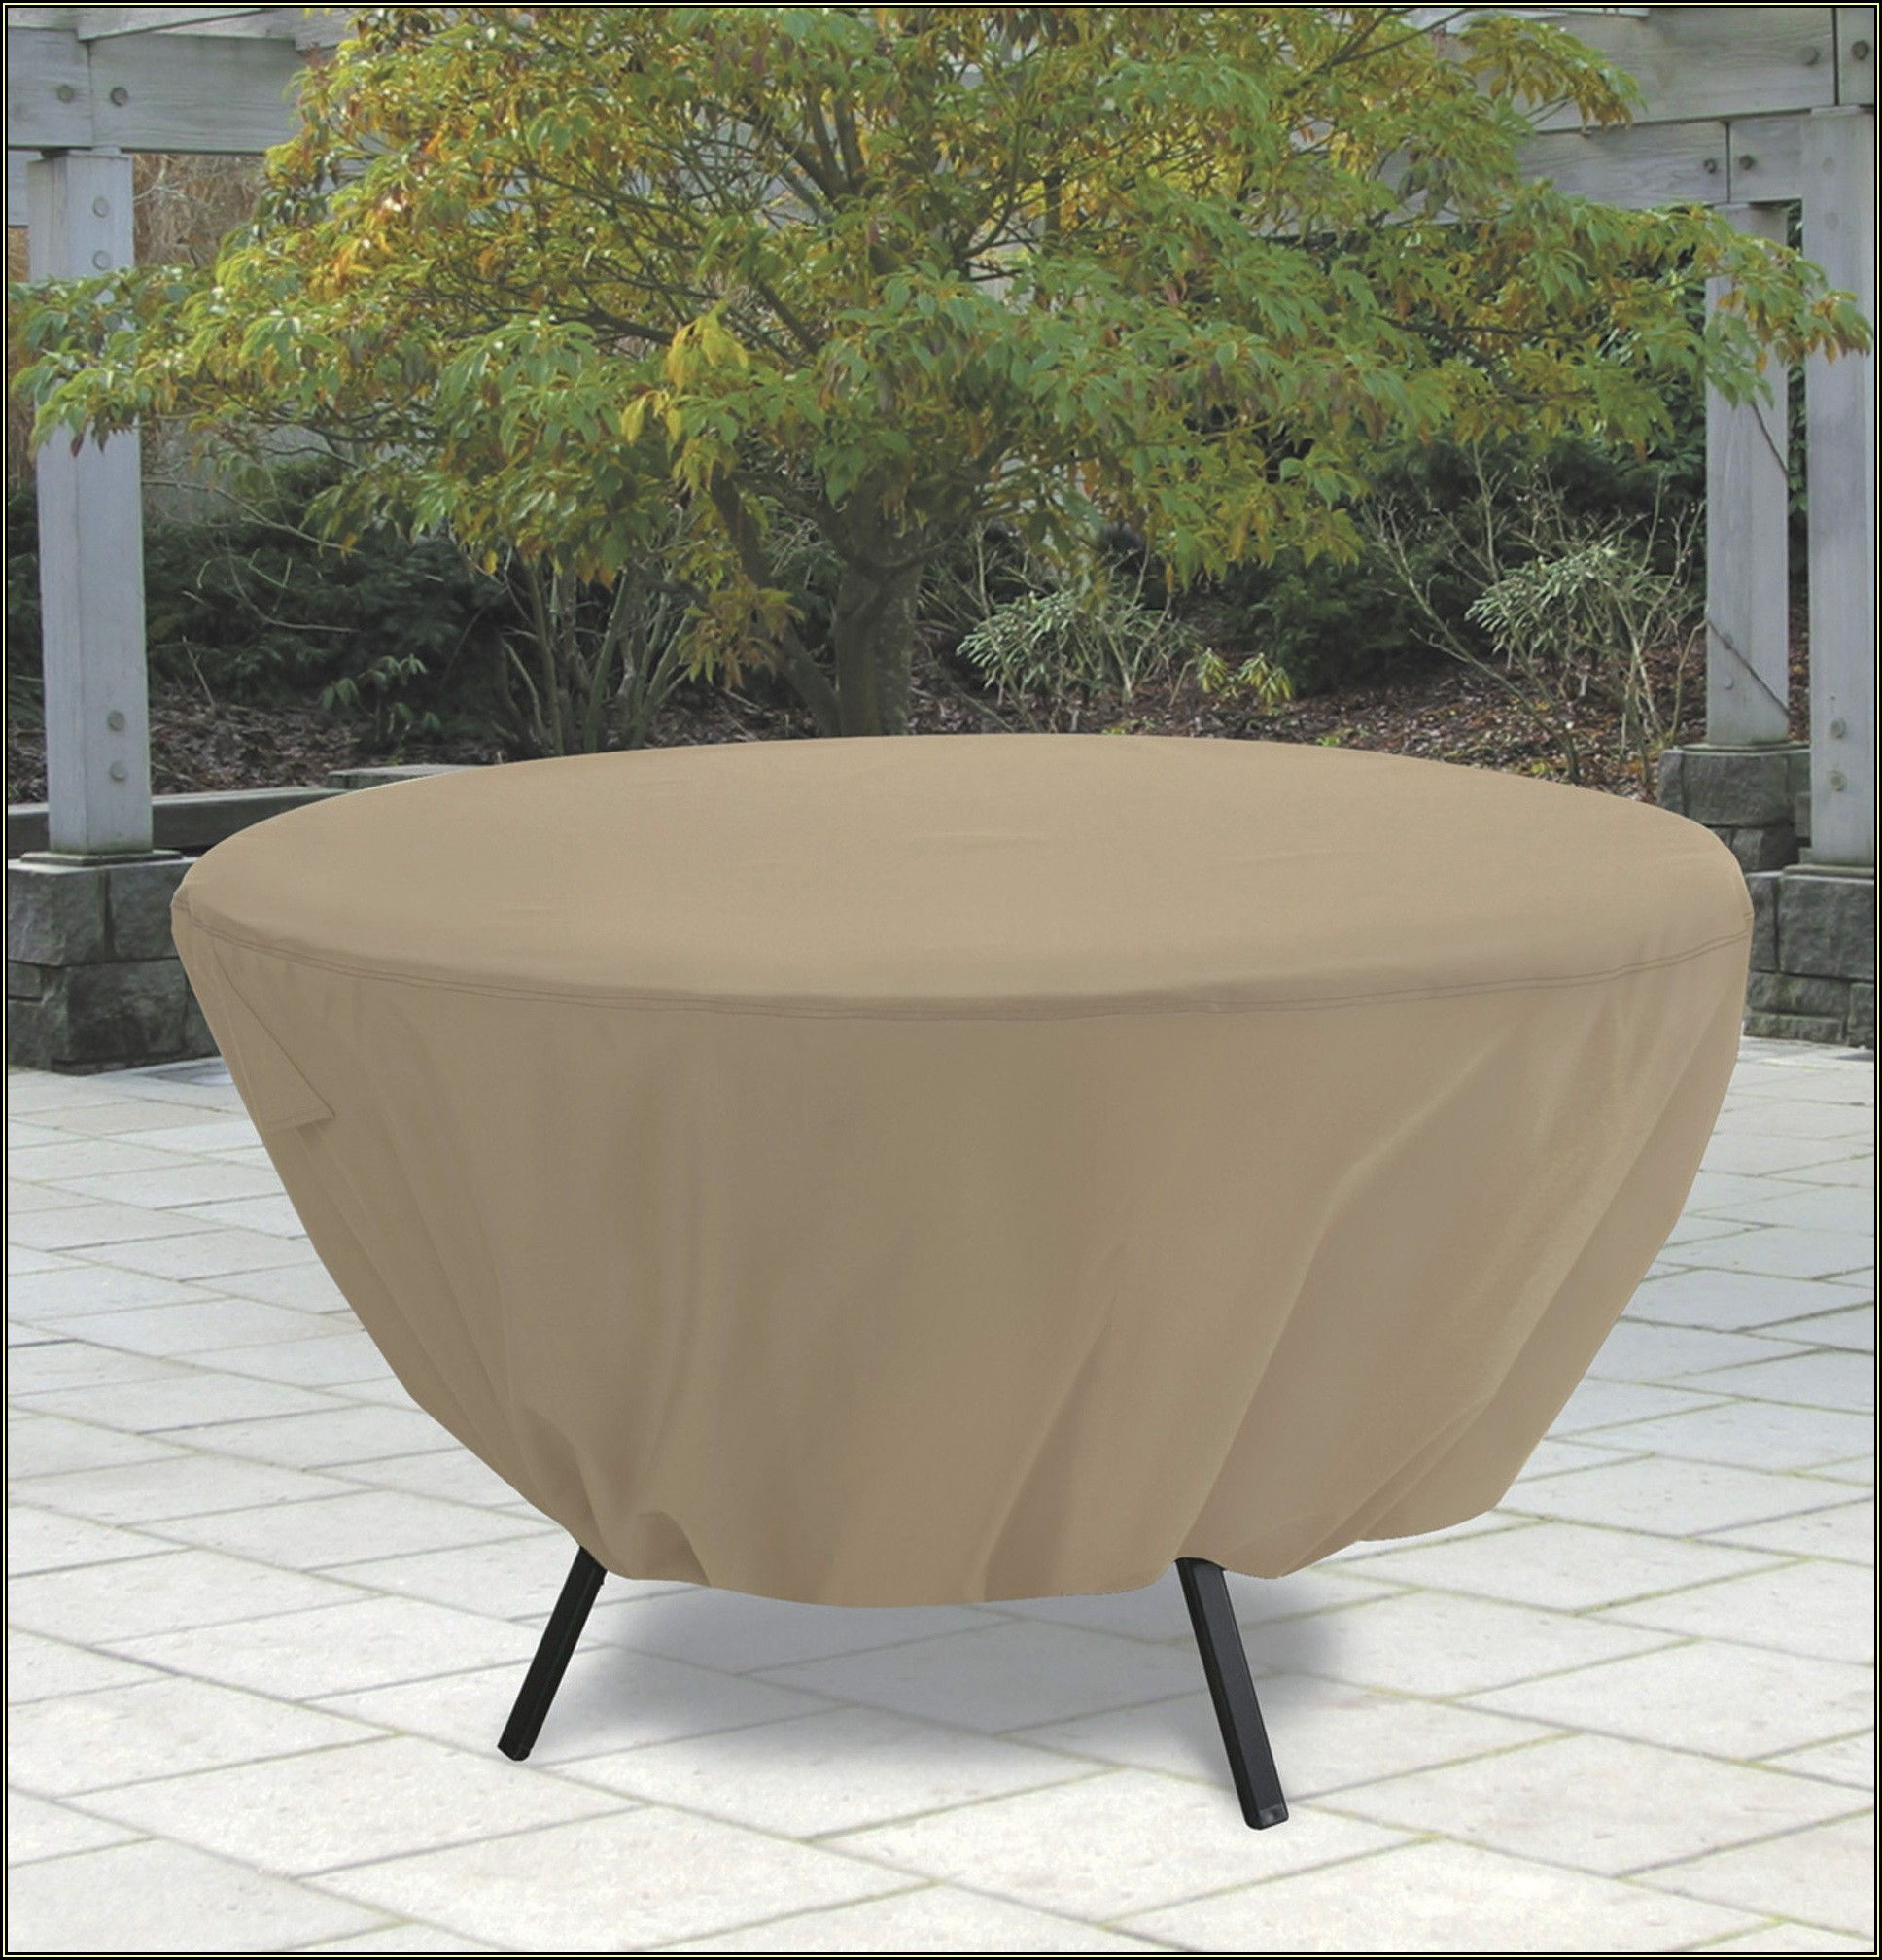 Round Patio Table Covers With Umbrella Hole